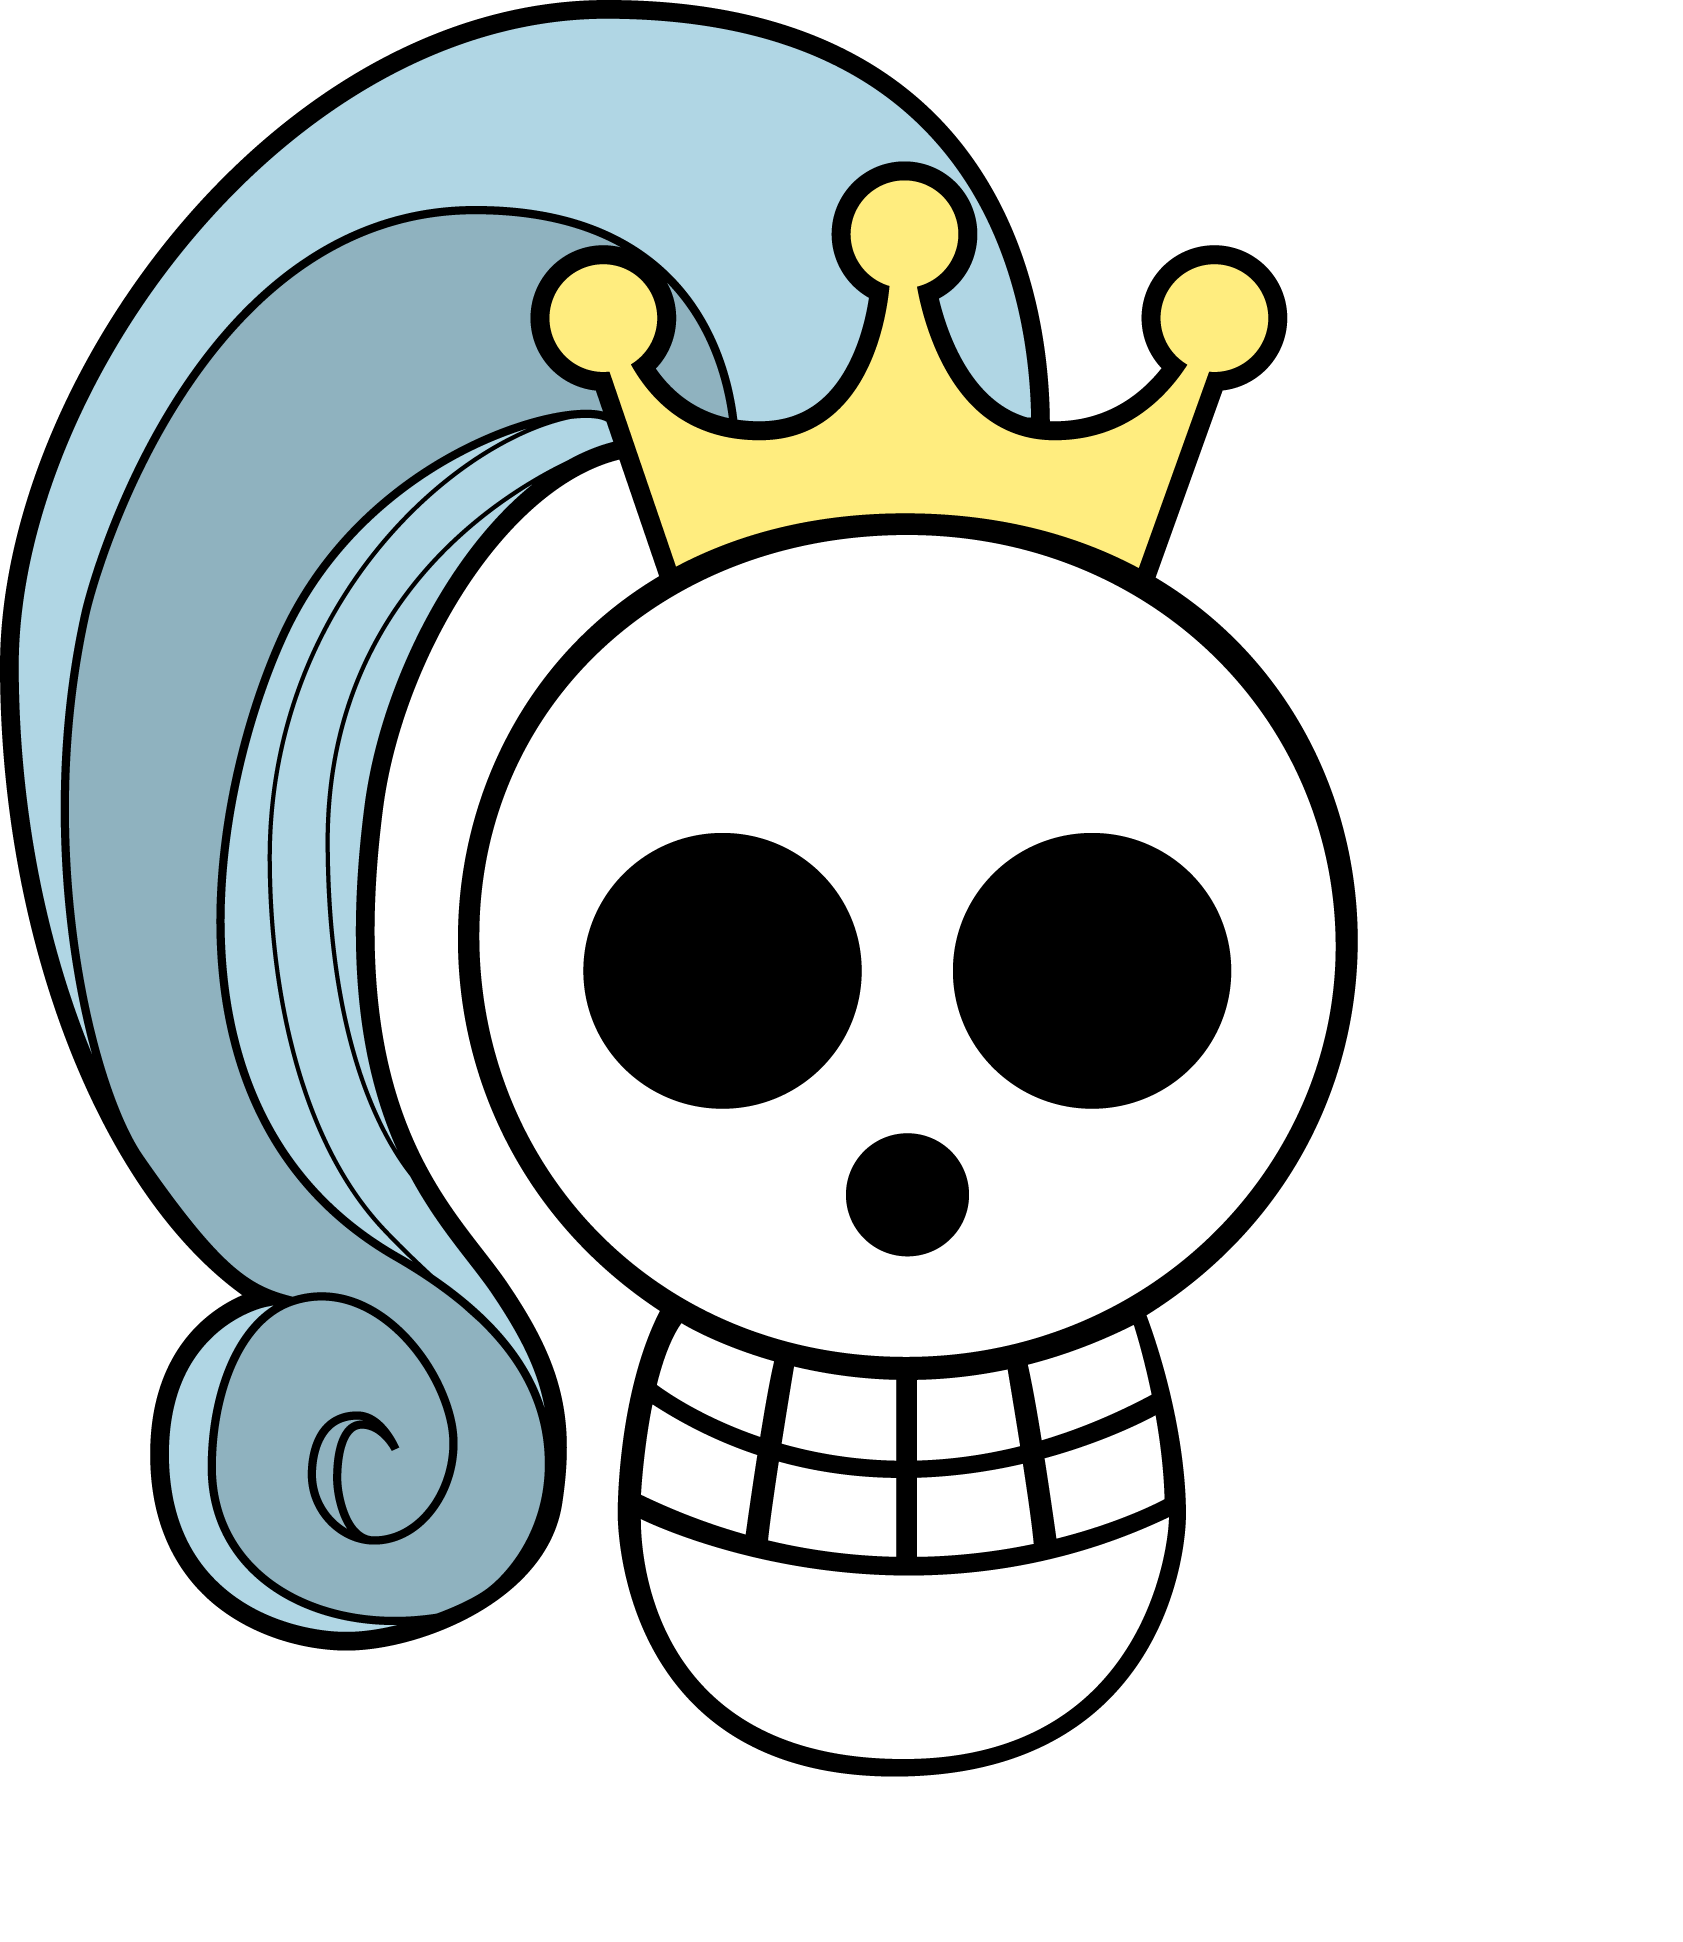 Logo One Piece Png - ClipArt Best